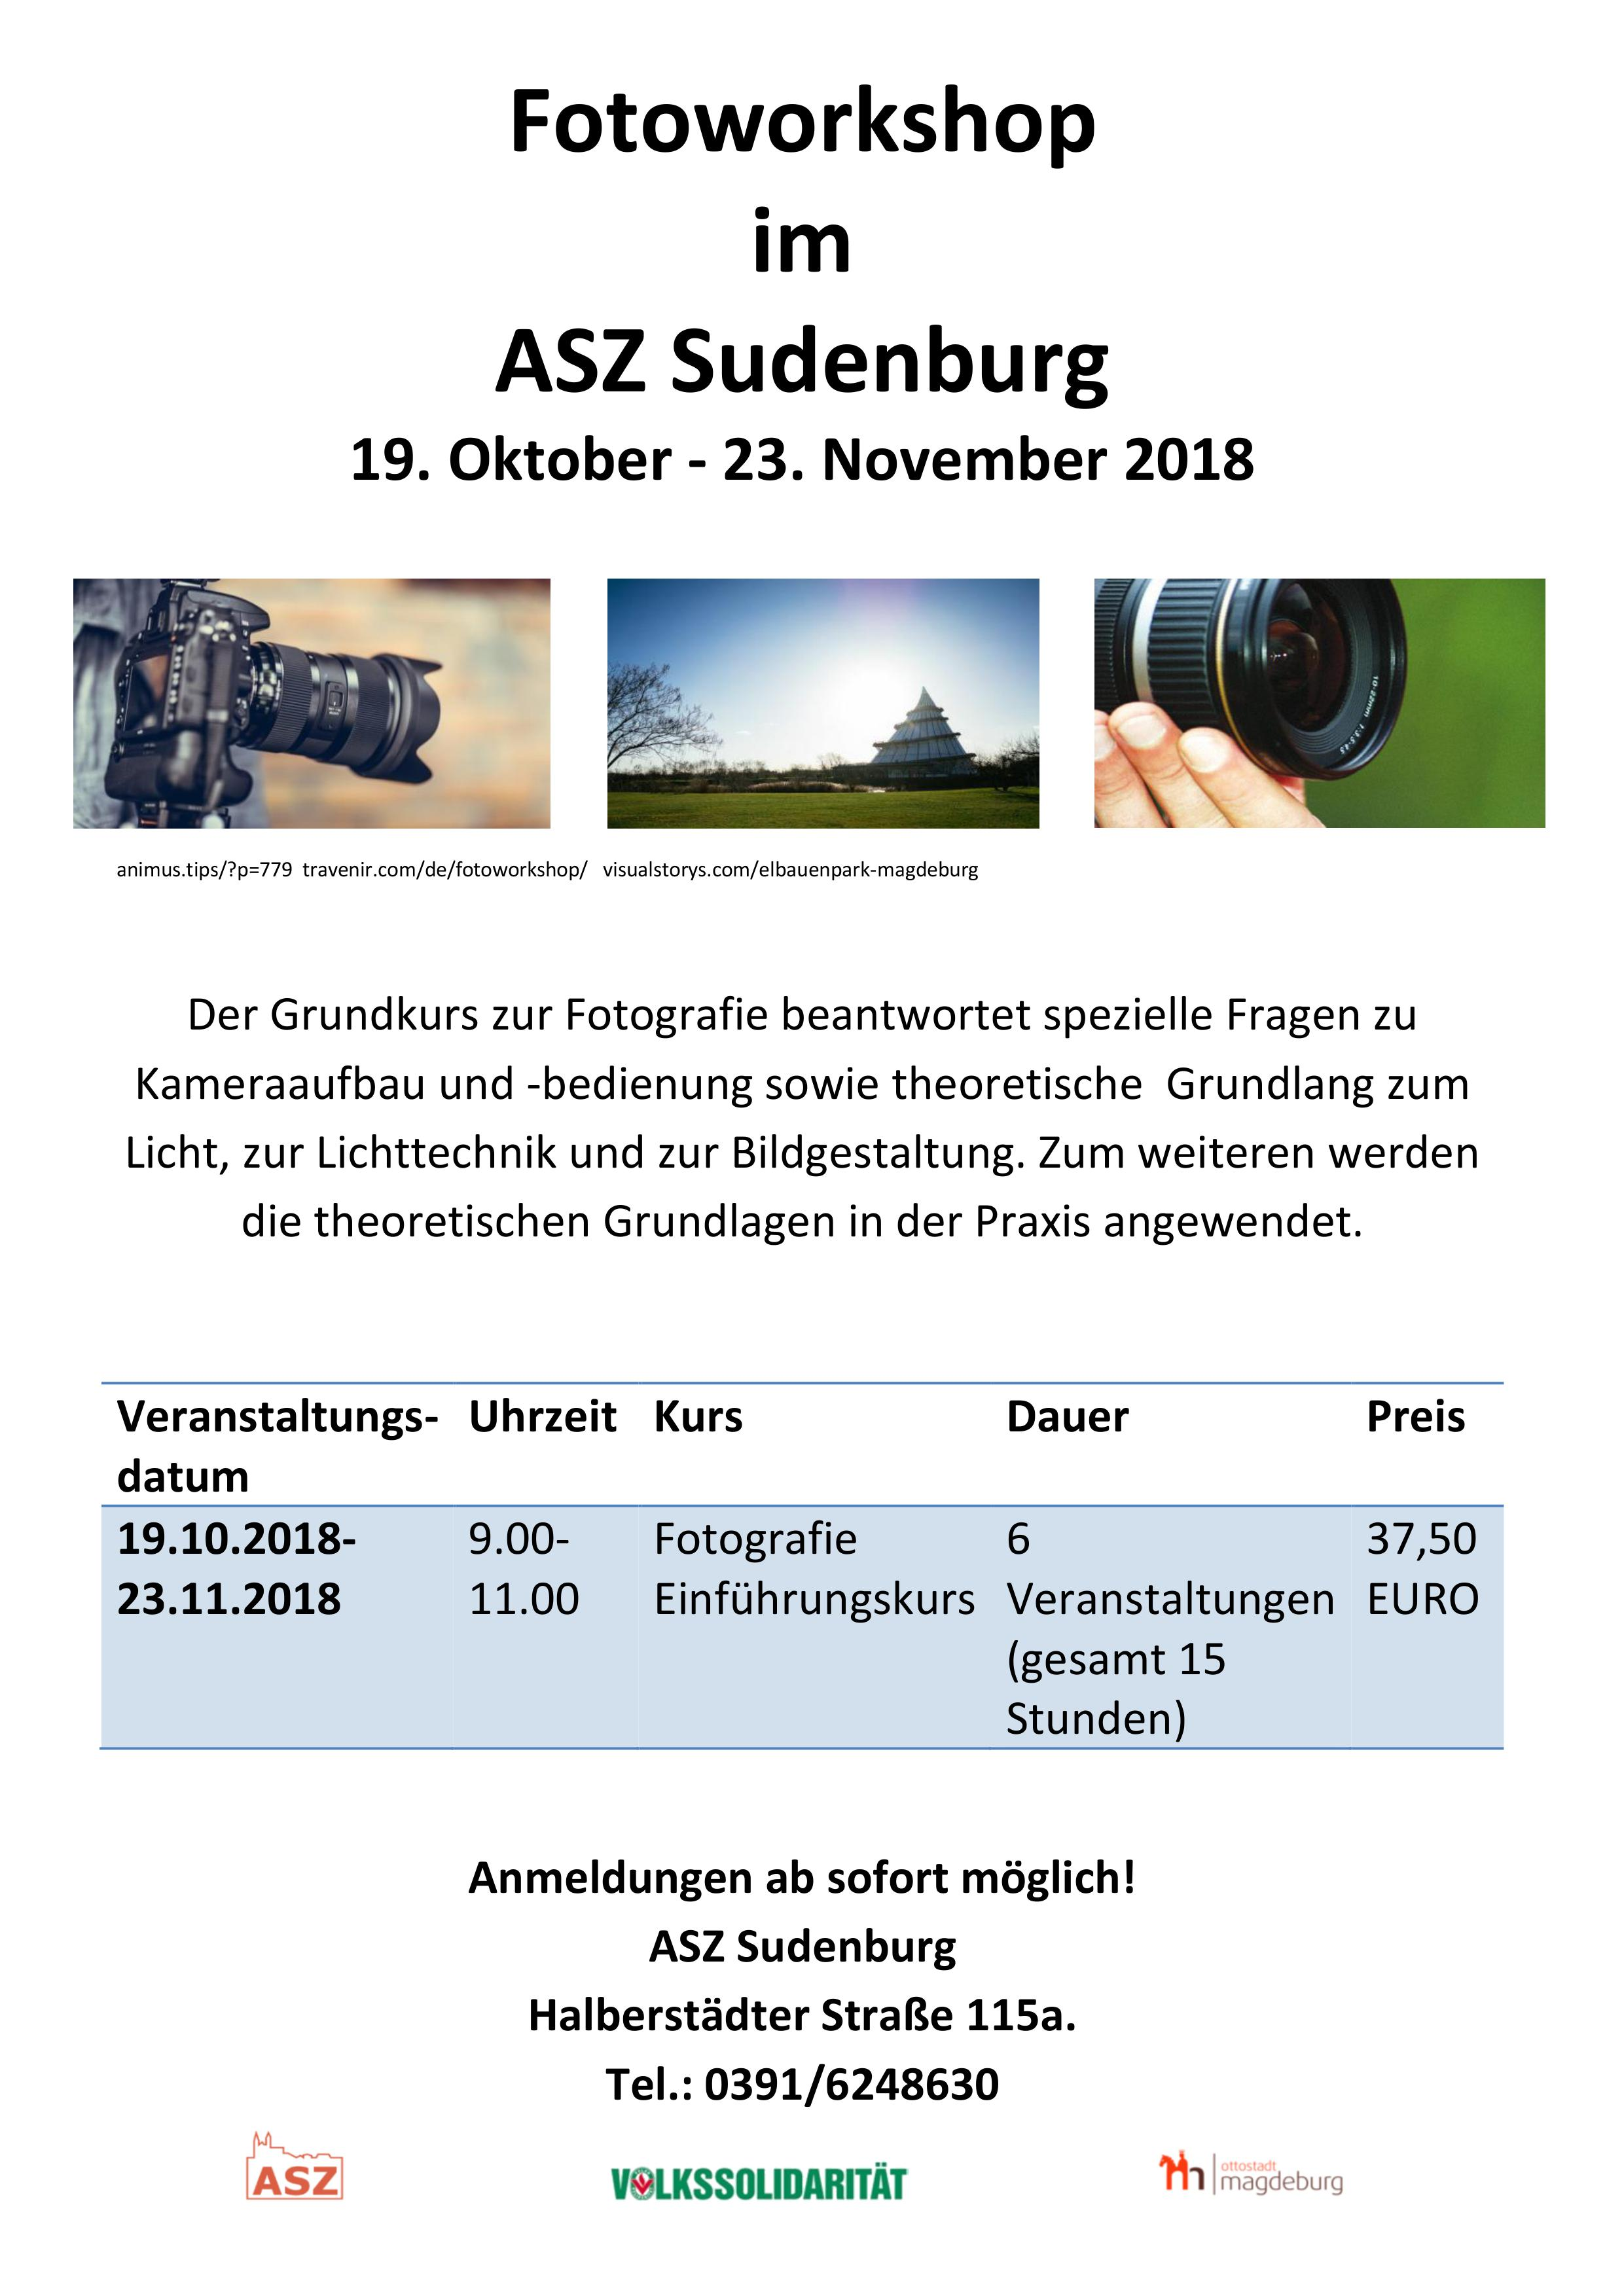 2018 Fotoworkshop